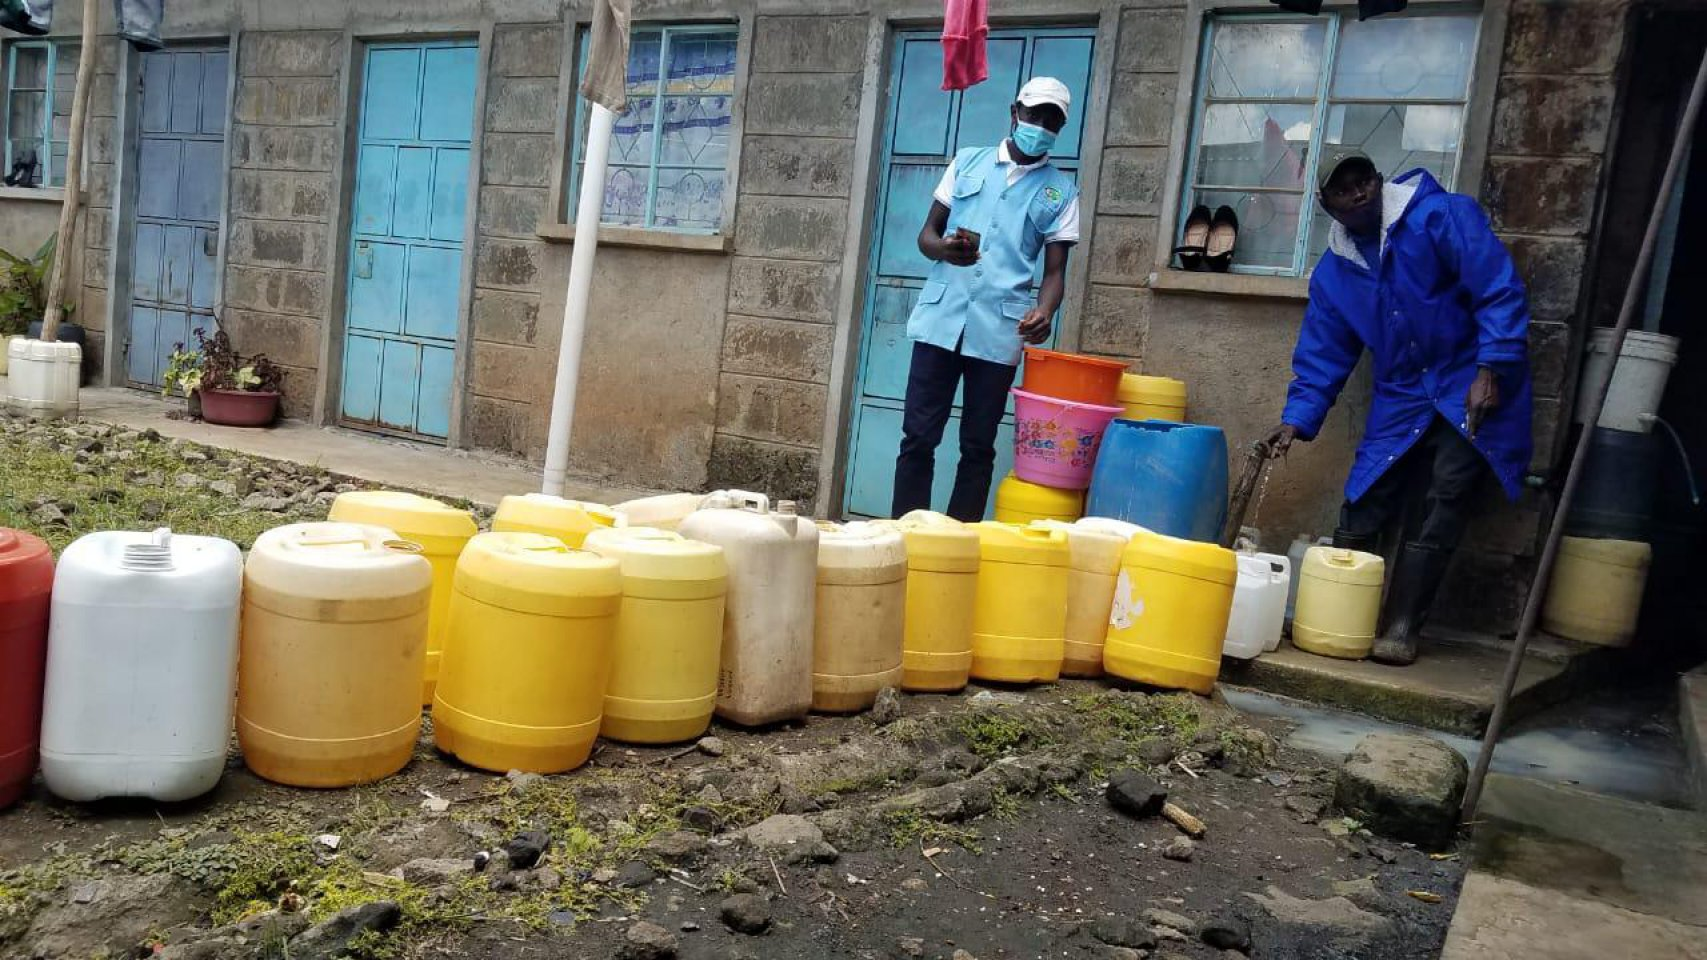 https://www.waterforlife.nl/files/visuals/_1920x960_fit_center-center_85_none/Rongai-6-Mile-3.JPG